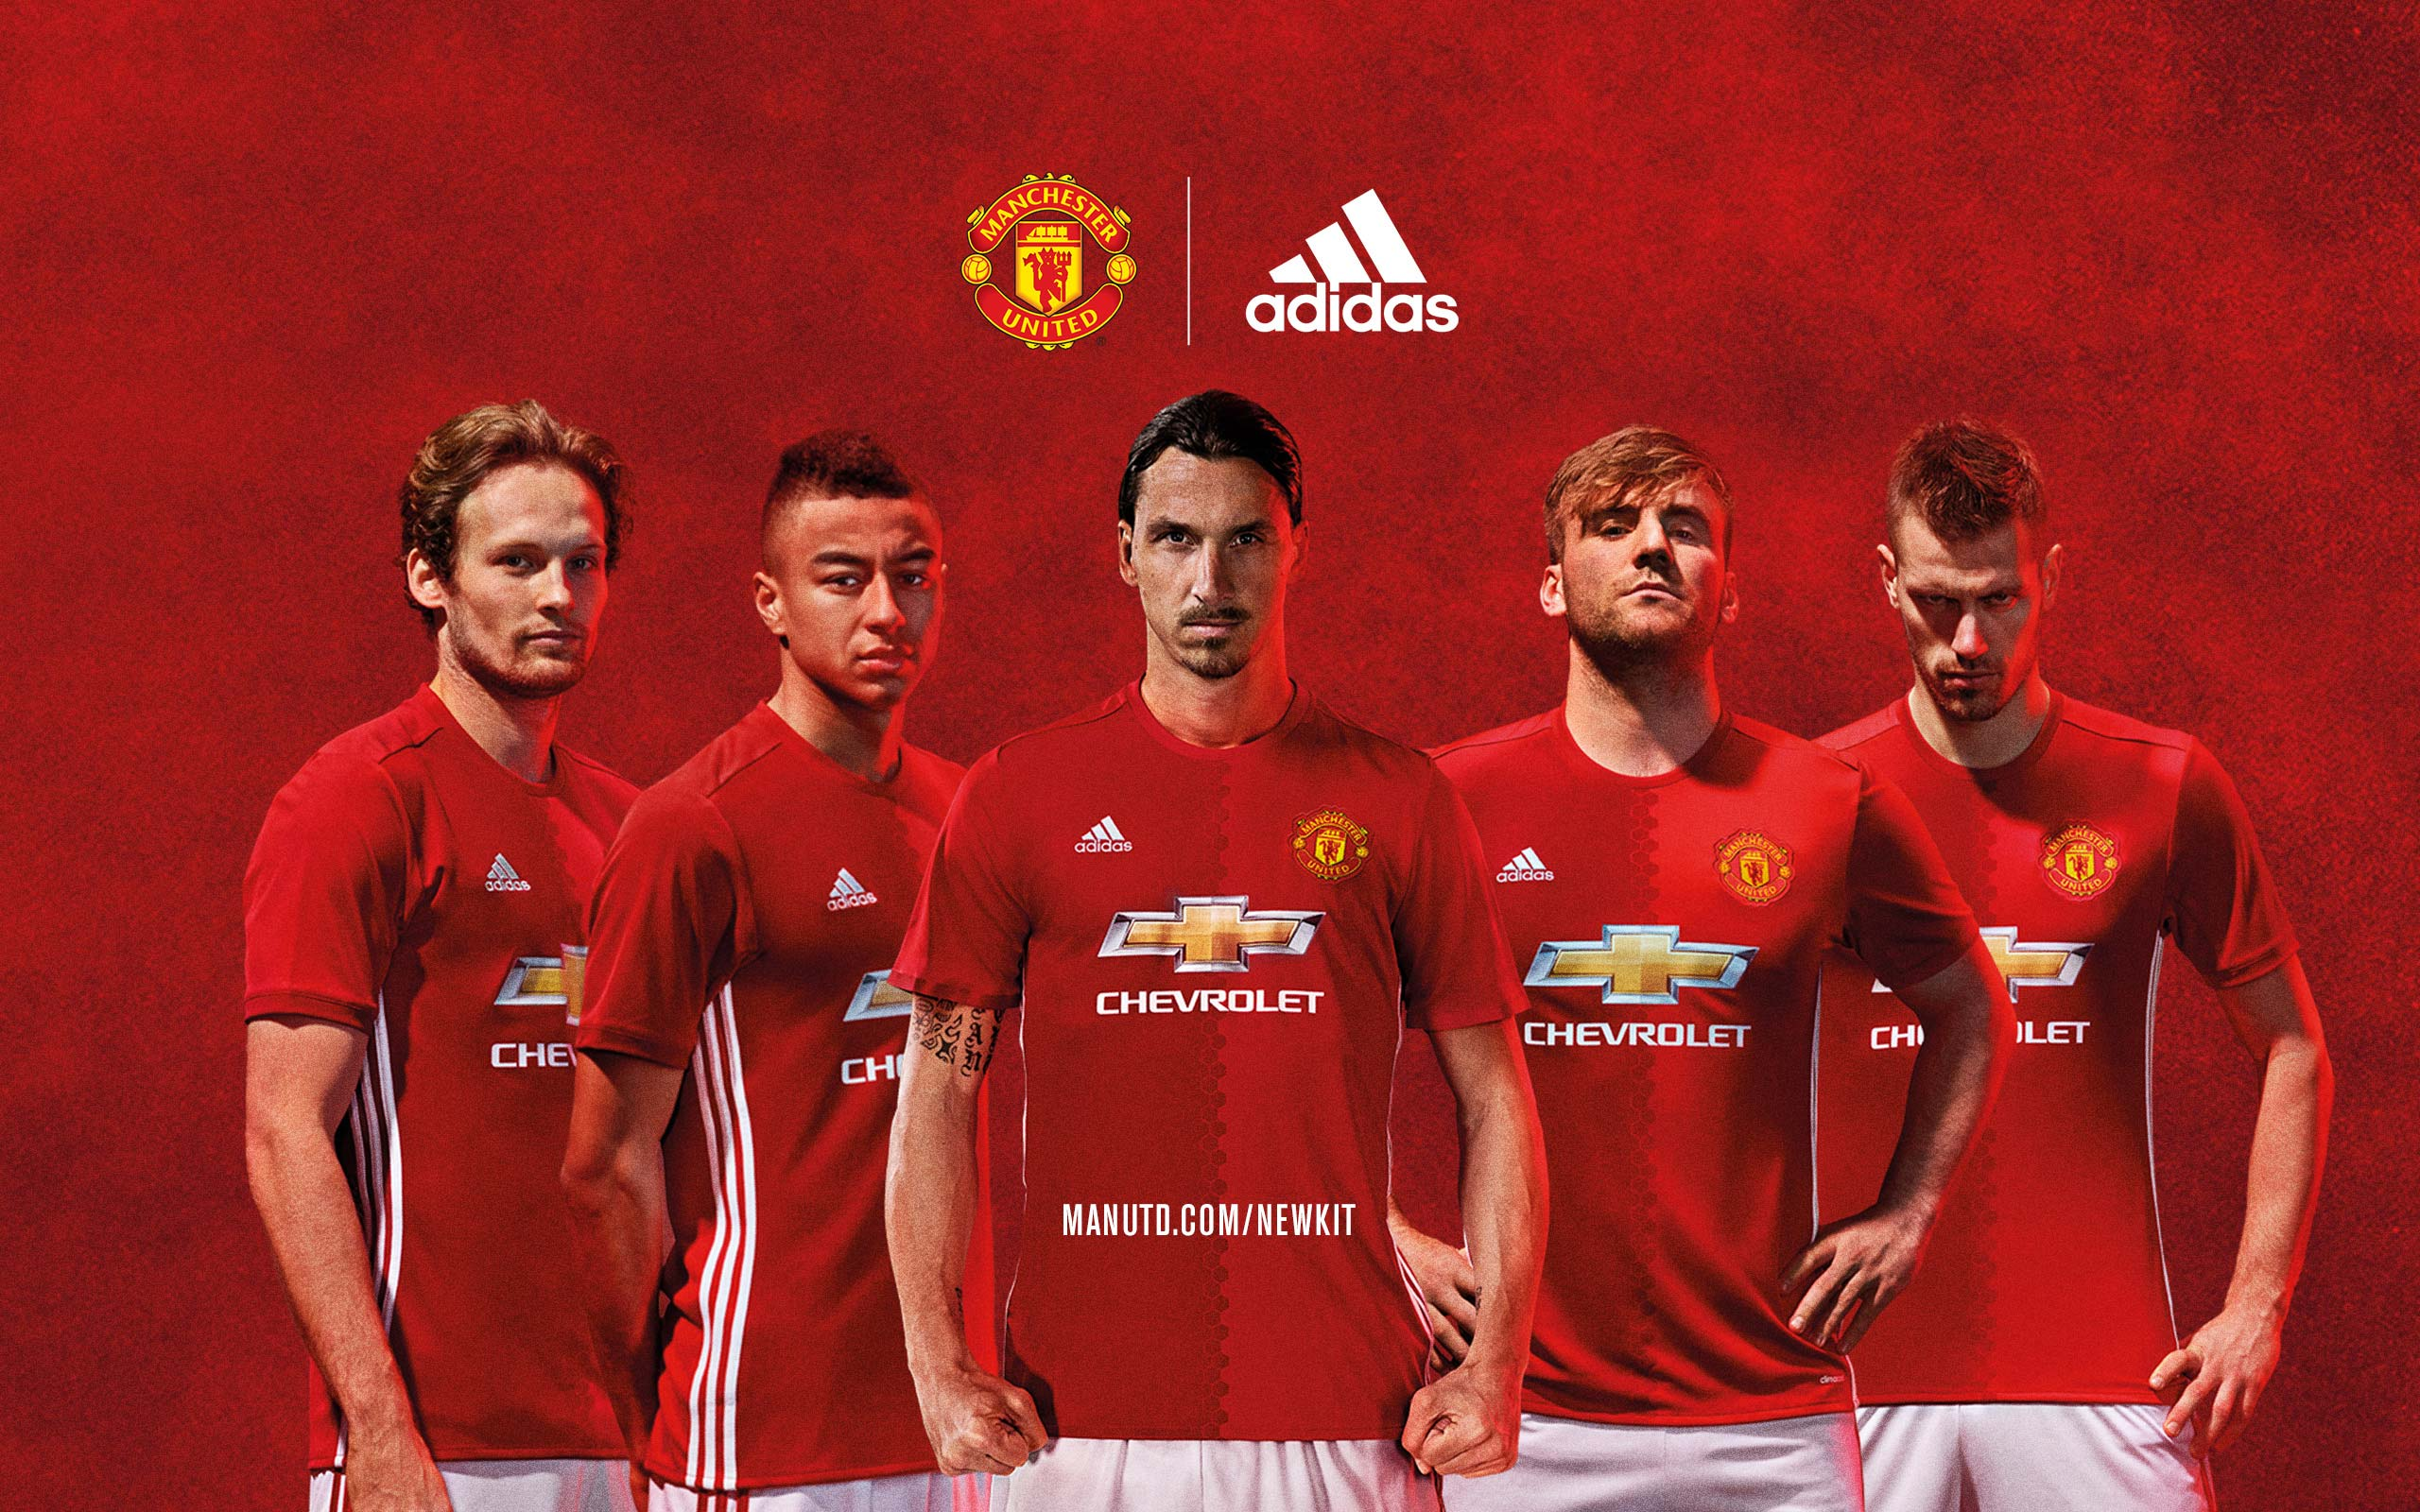 Manchester united players 2017 wallpapers wallpaper cave - Cool man united wallpapers ...